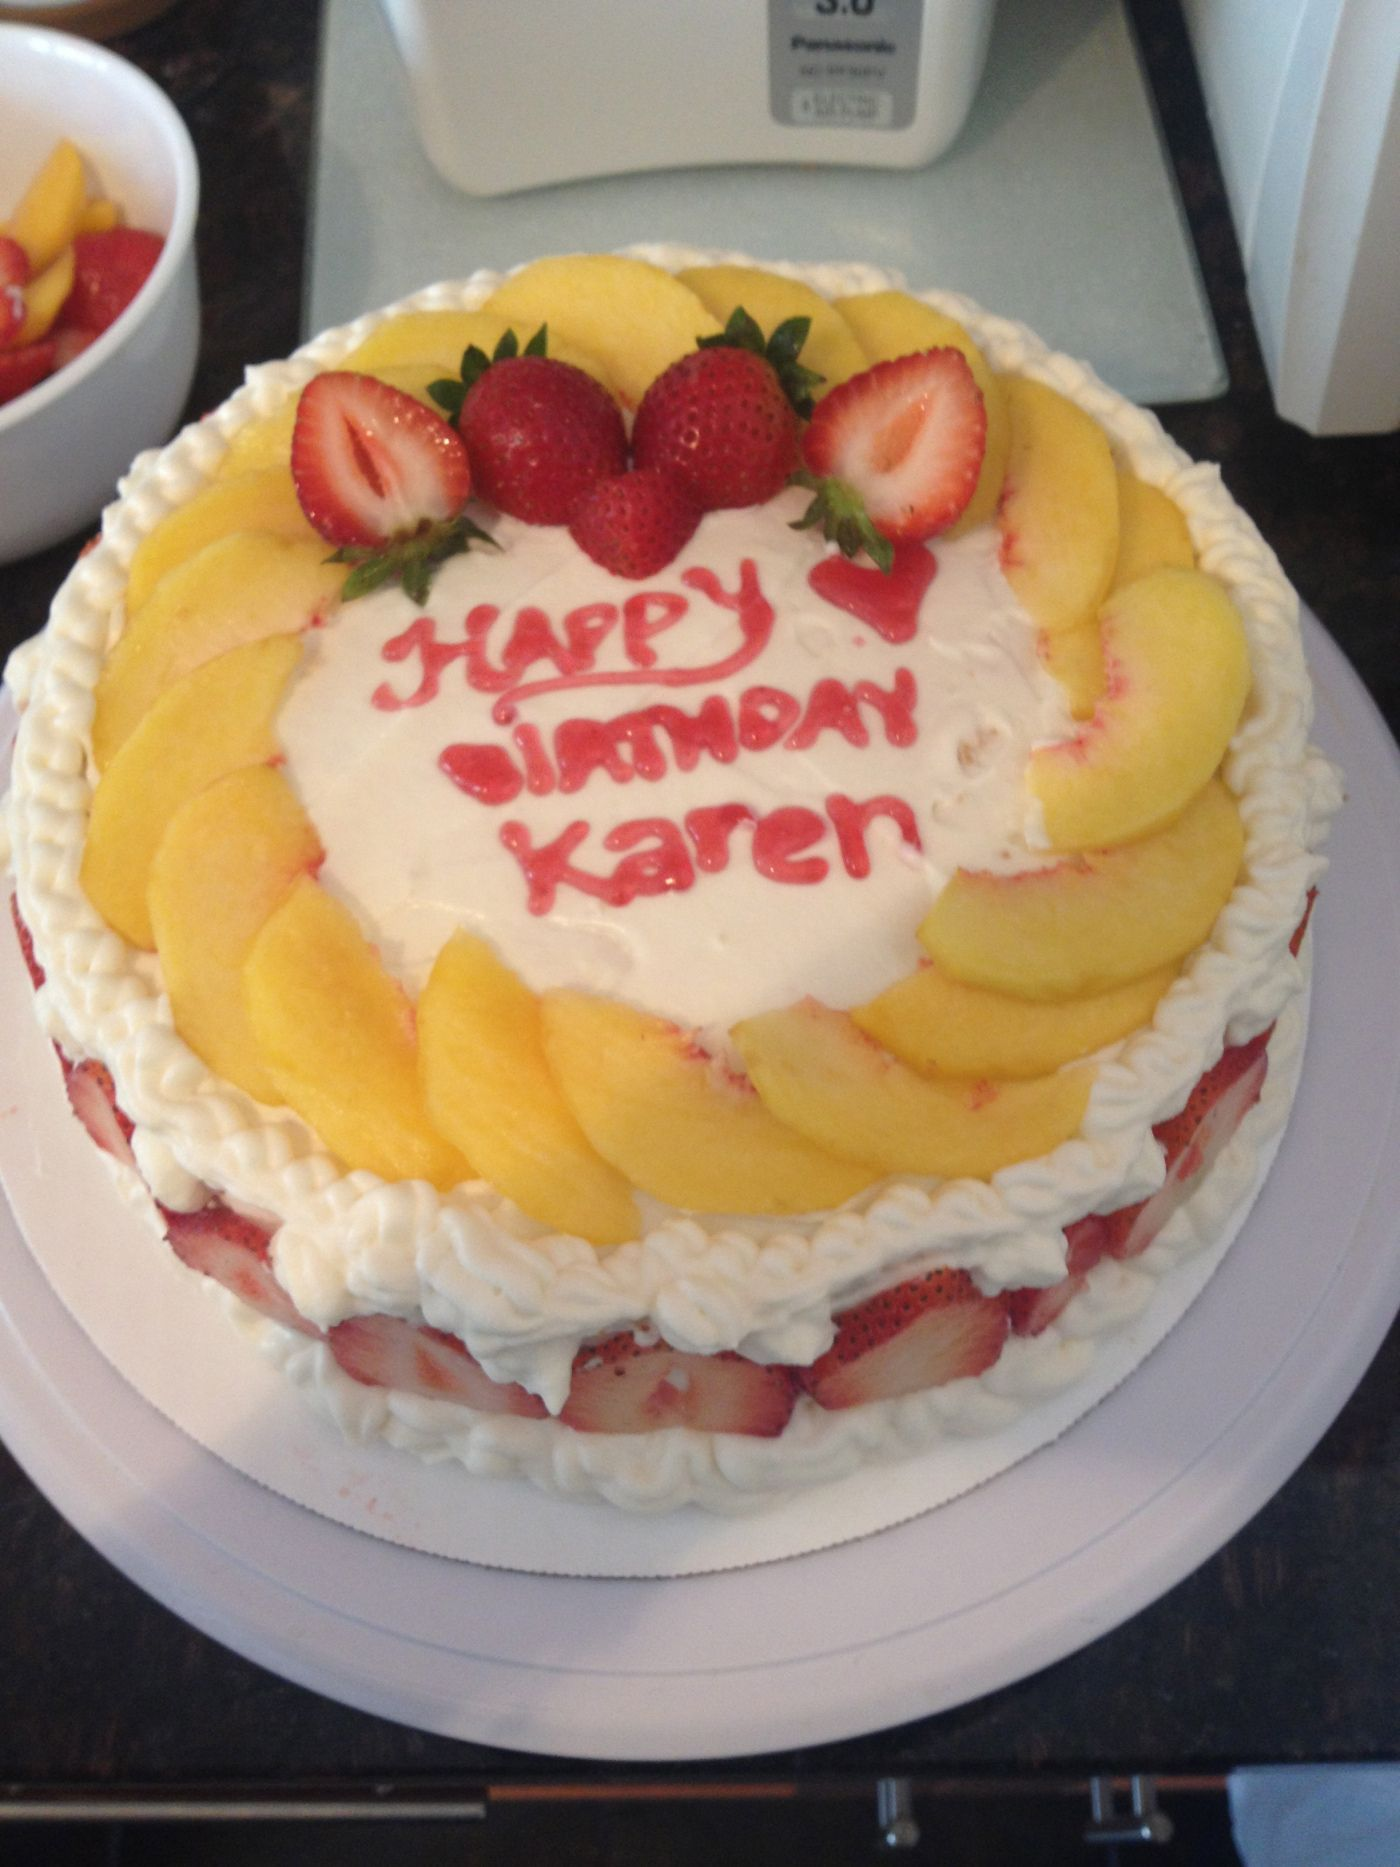 Excellent 20 Wonderful Image Of Asian Birthday Cake With Images Funny Birthday Cards Online Elaedamsfinfo